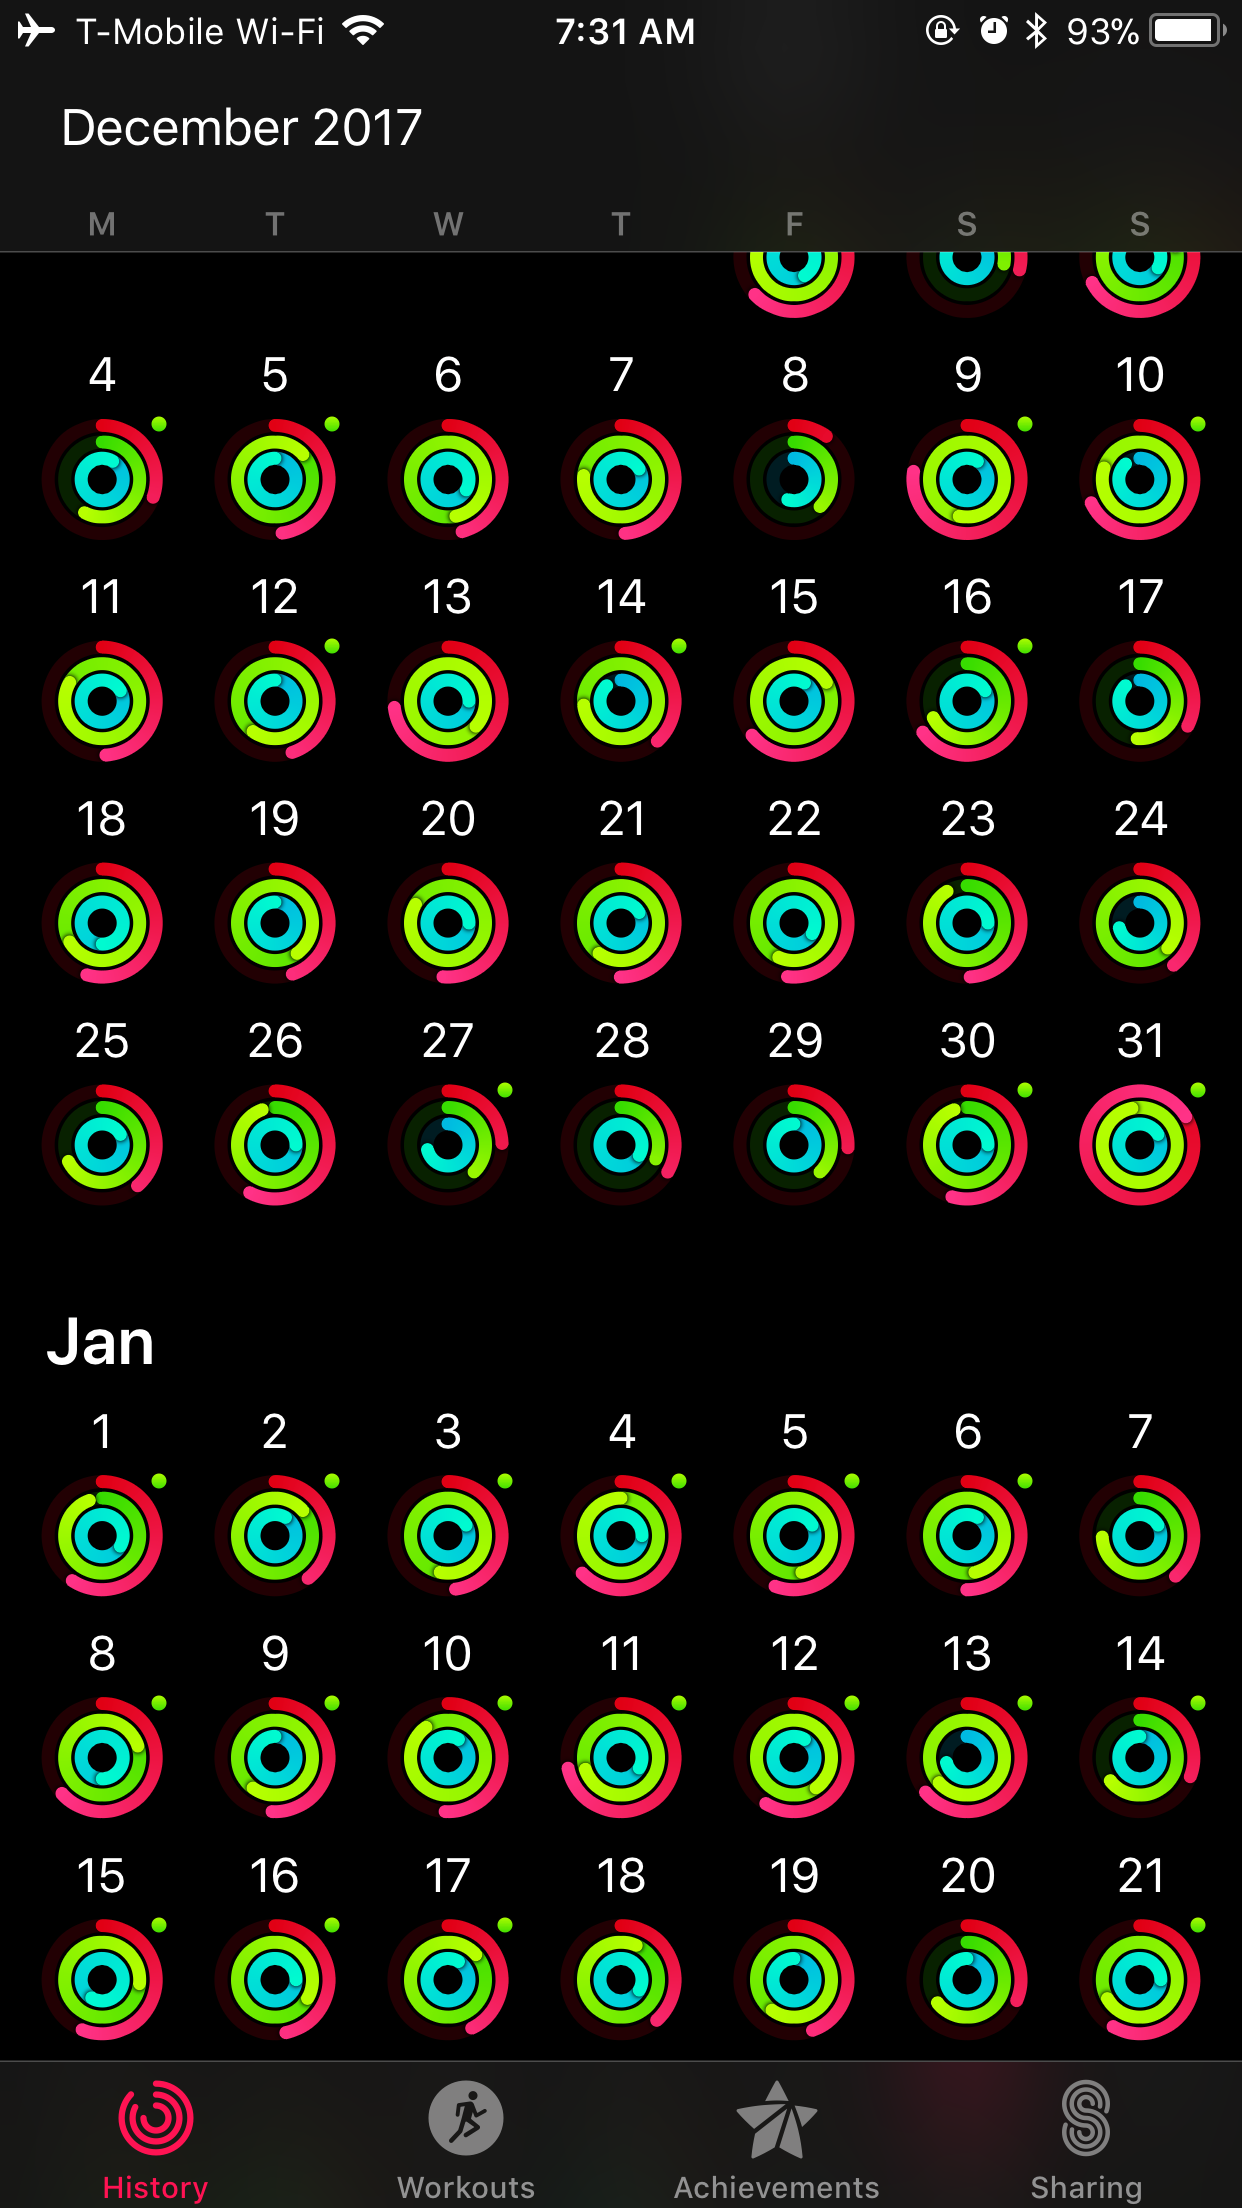 Apple Watch daily activity breakdown